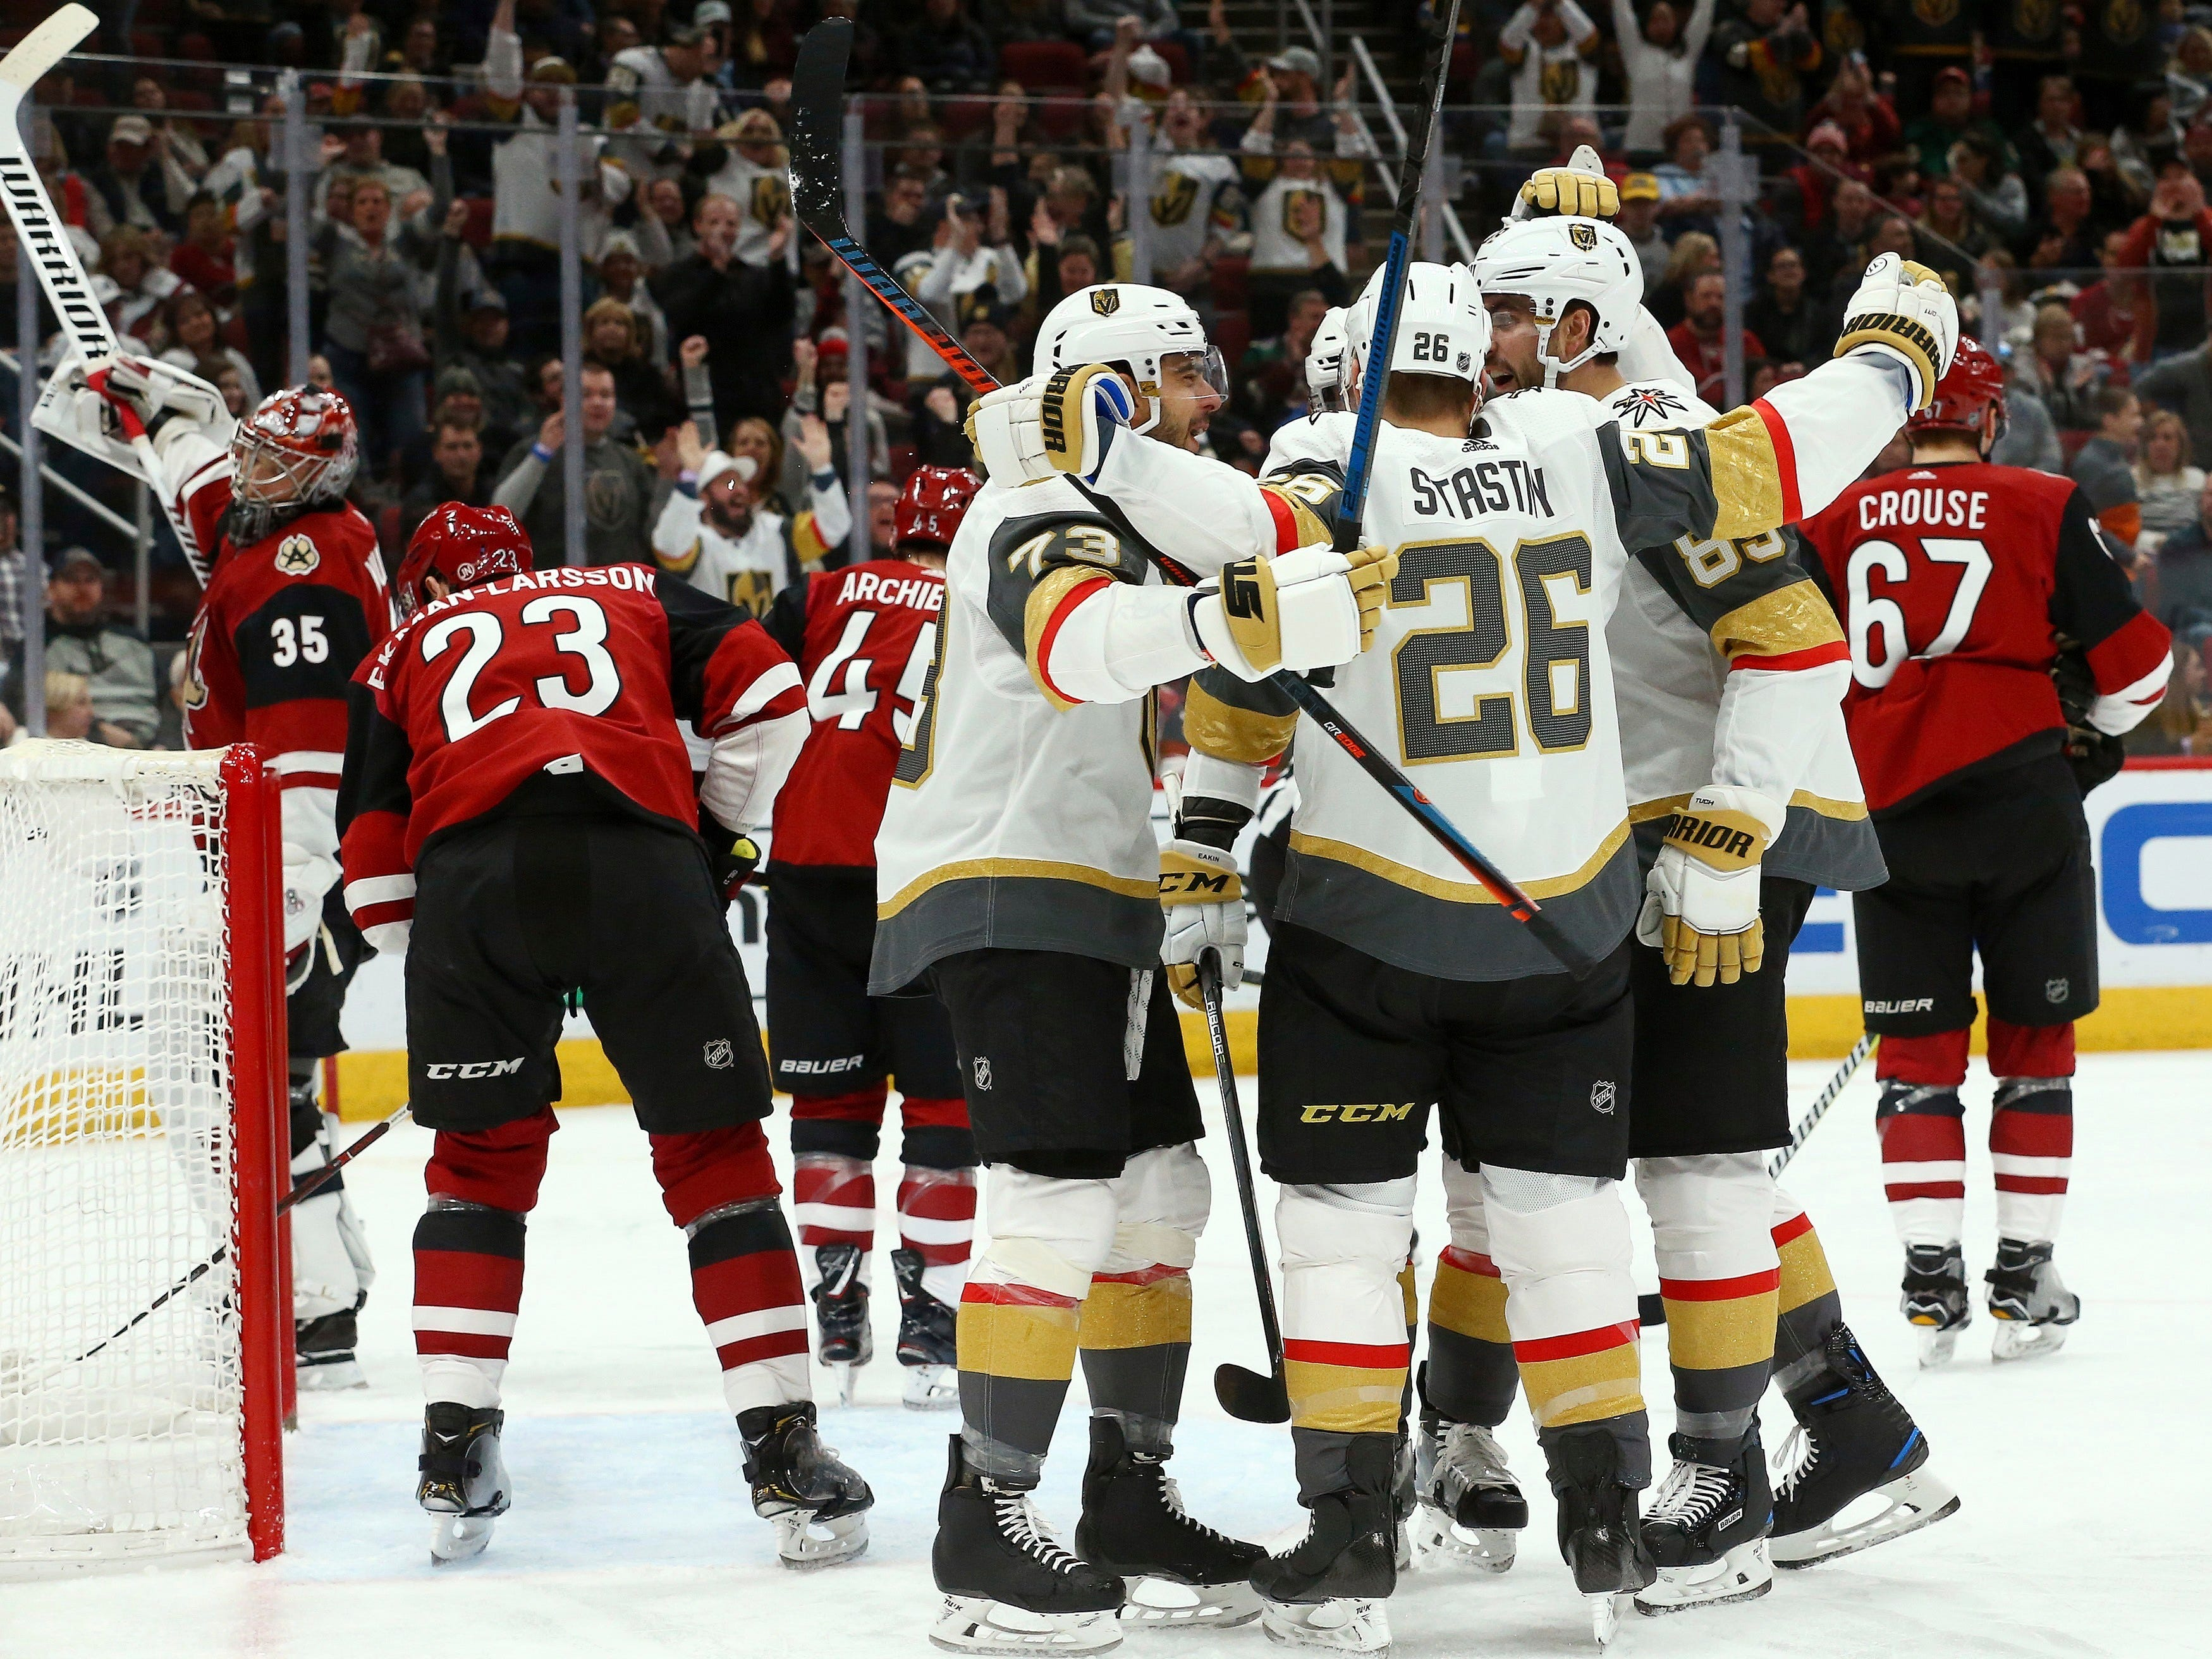 Vegas Golden Knights center Paul Stastny (26) celebrates his goal against the Arizona Coyotes with left wing Valentin Zykov (73) and right wing Alex Tuch (89) as Coyotes goaltender Darcy Kuemper (35) and Coyotes defenseman Oliver Ekman-Larsson (23) look for the puck during the first period of an NHL hockey game Sunday, Dec. 30, 2018, in Glendale, Ariz. (AP Photo/Ross D. Franklin)